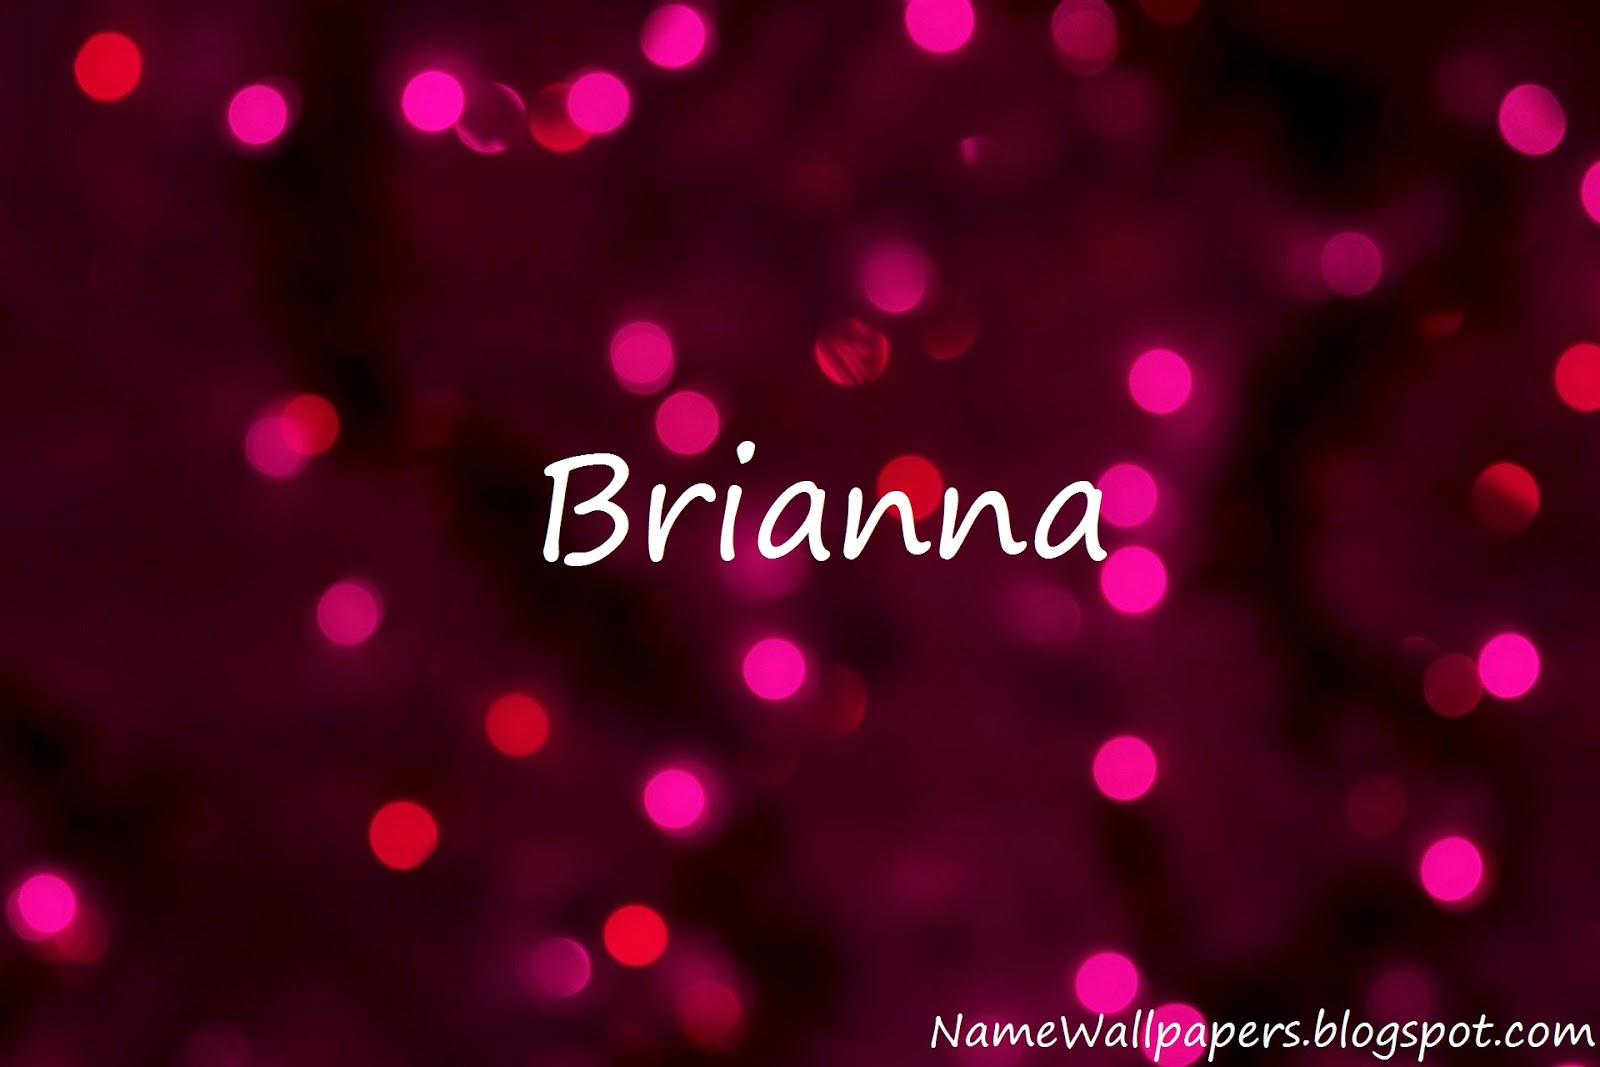 Brianna   Na...T B H Meaning